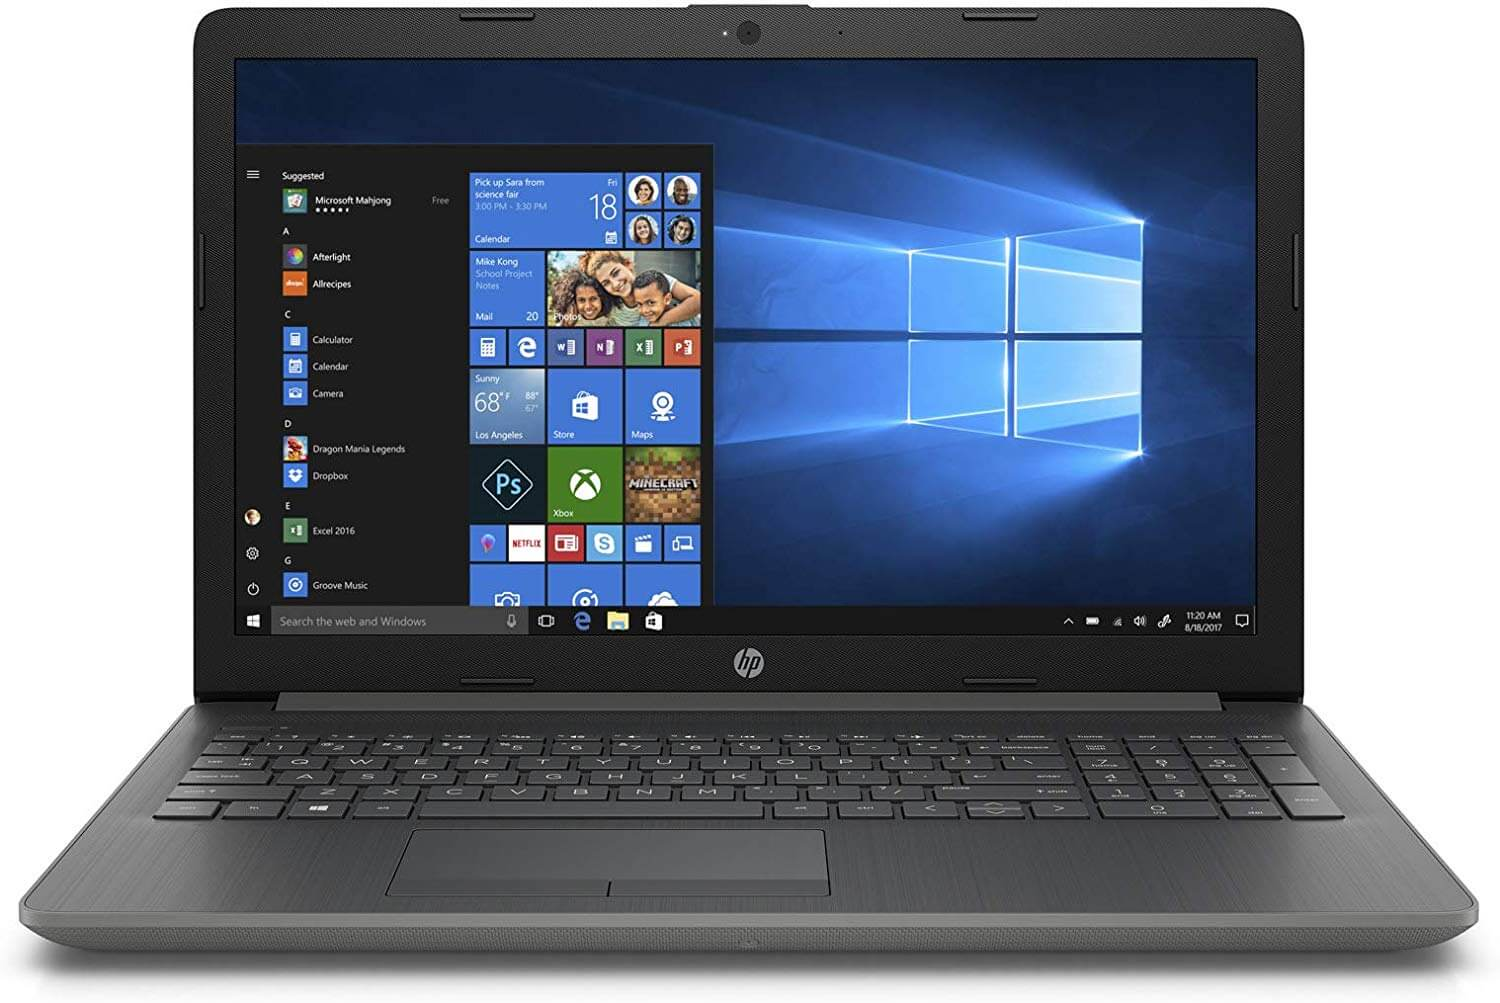 HP Pavilion 15-db0001ne Notebook Laptop With 15.6-Inch Display/AMD Processor/4GB RAM/1TB HDD/2GB AMD Radeon 520 Graphic Card With English/Arabic Keyboard Dark Ash Silver